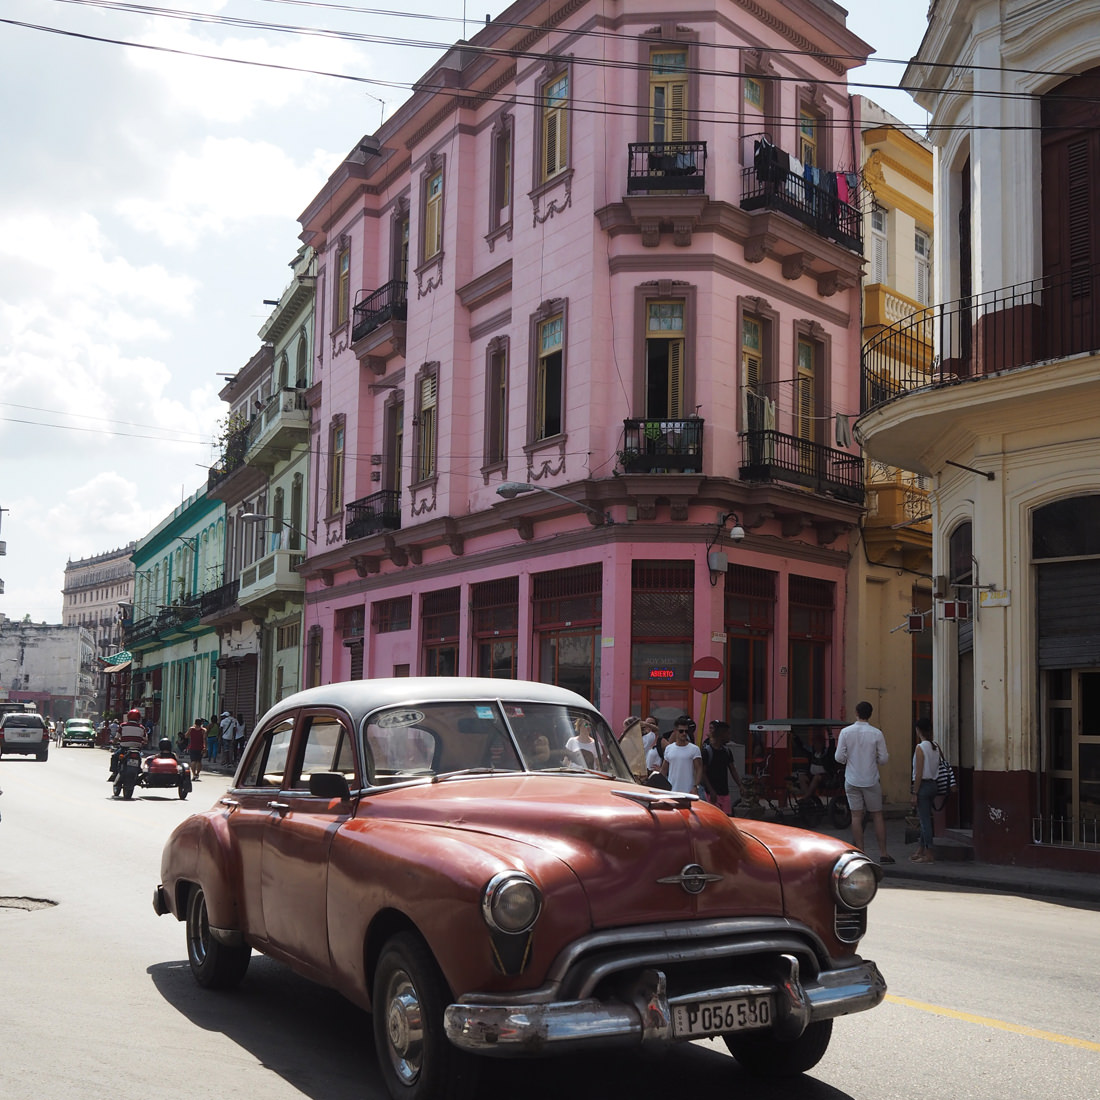 Pictures of Havana and Travel Diary